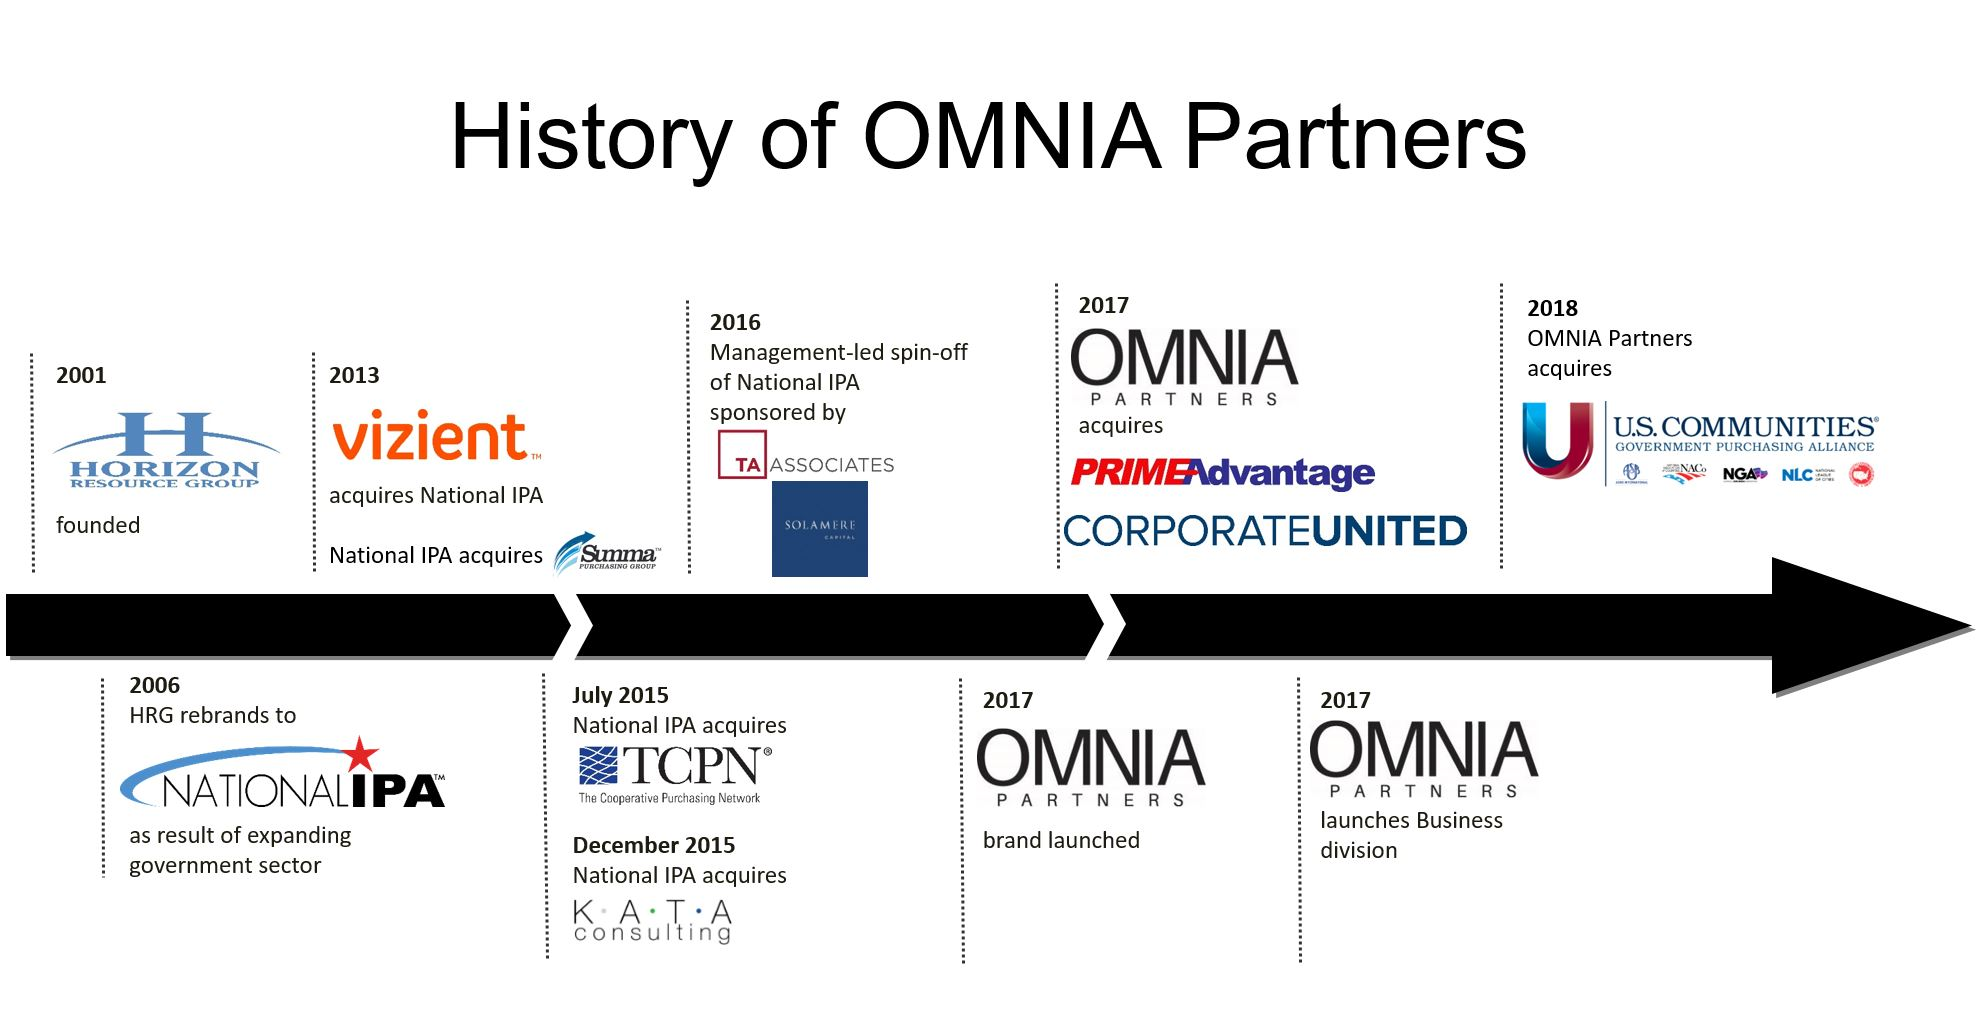 The History of OMNIA Partners